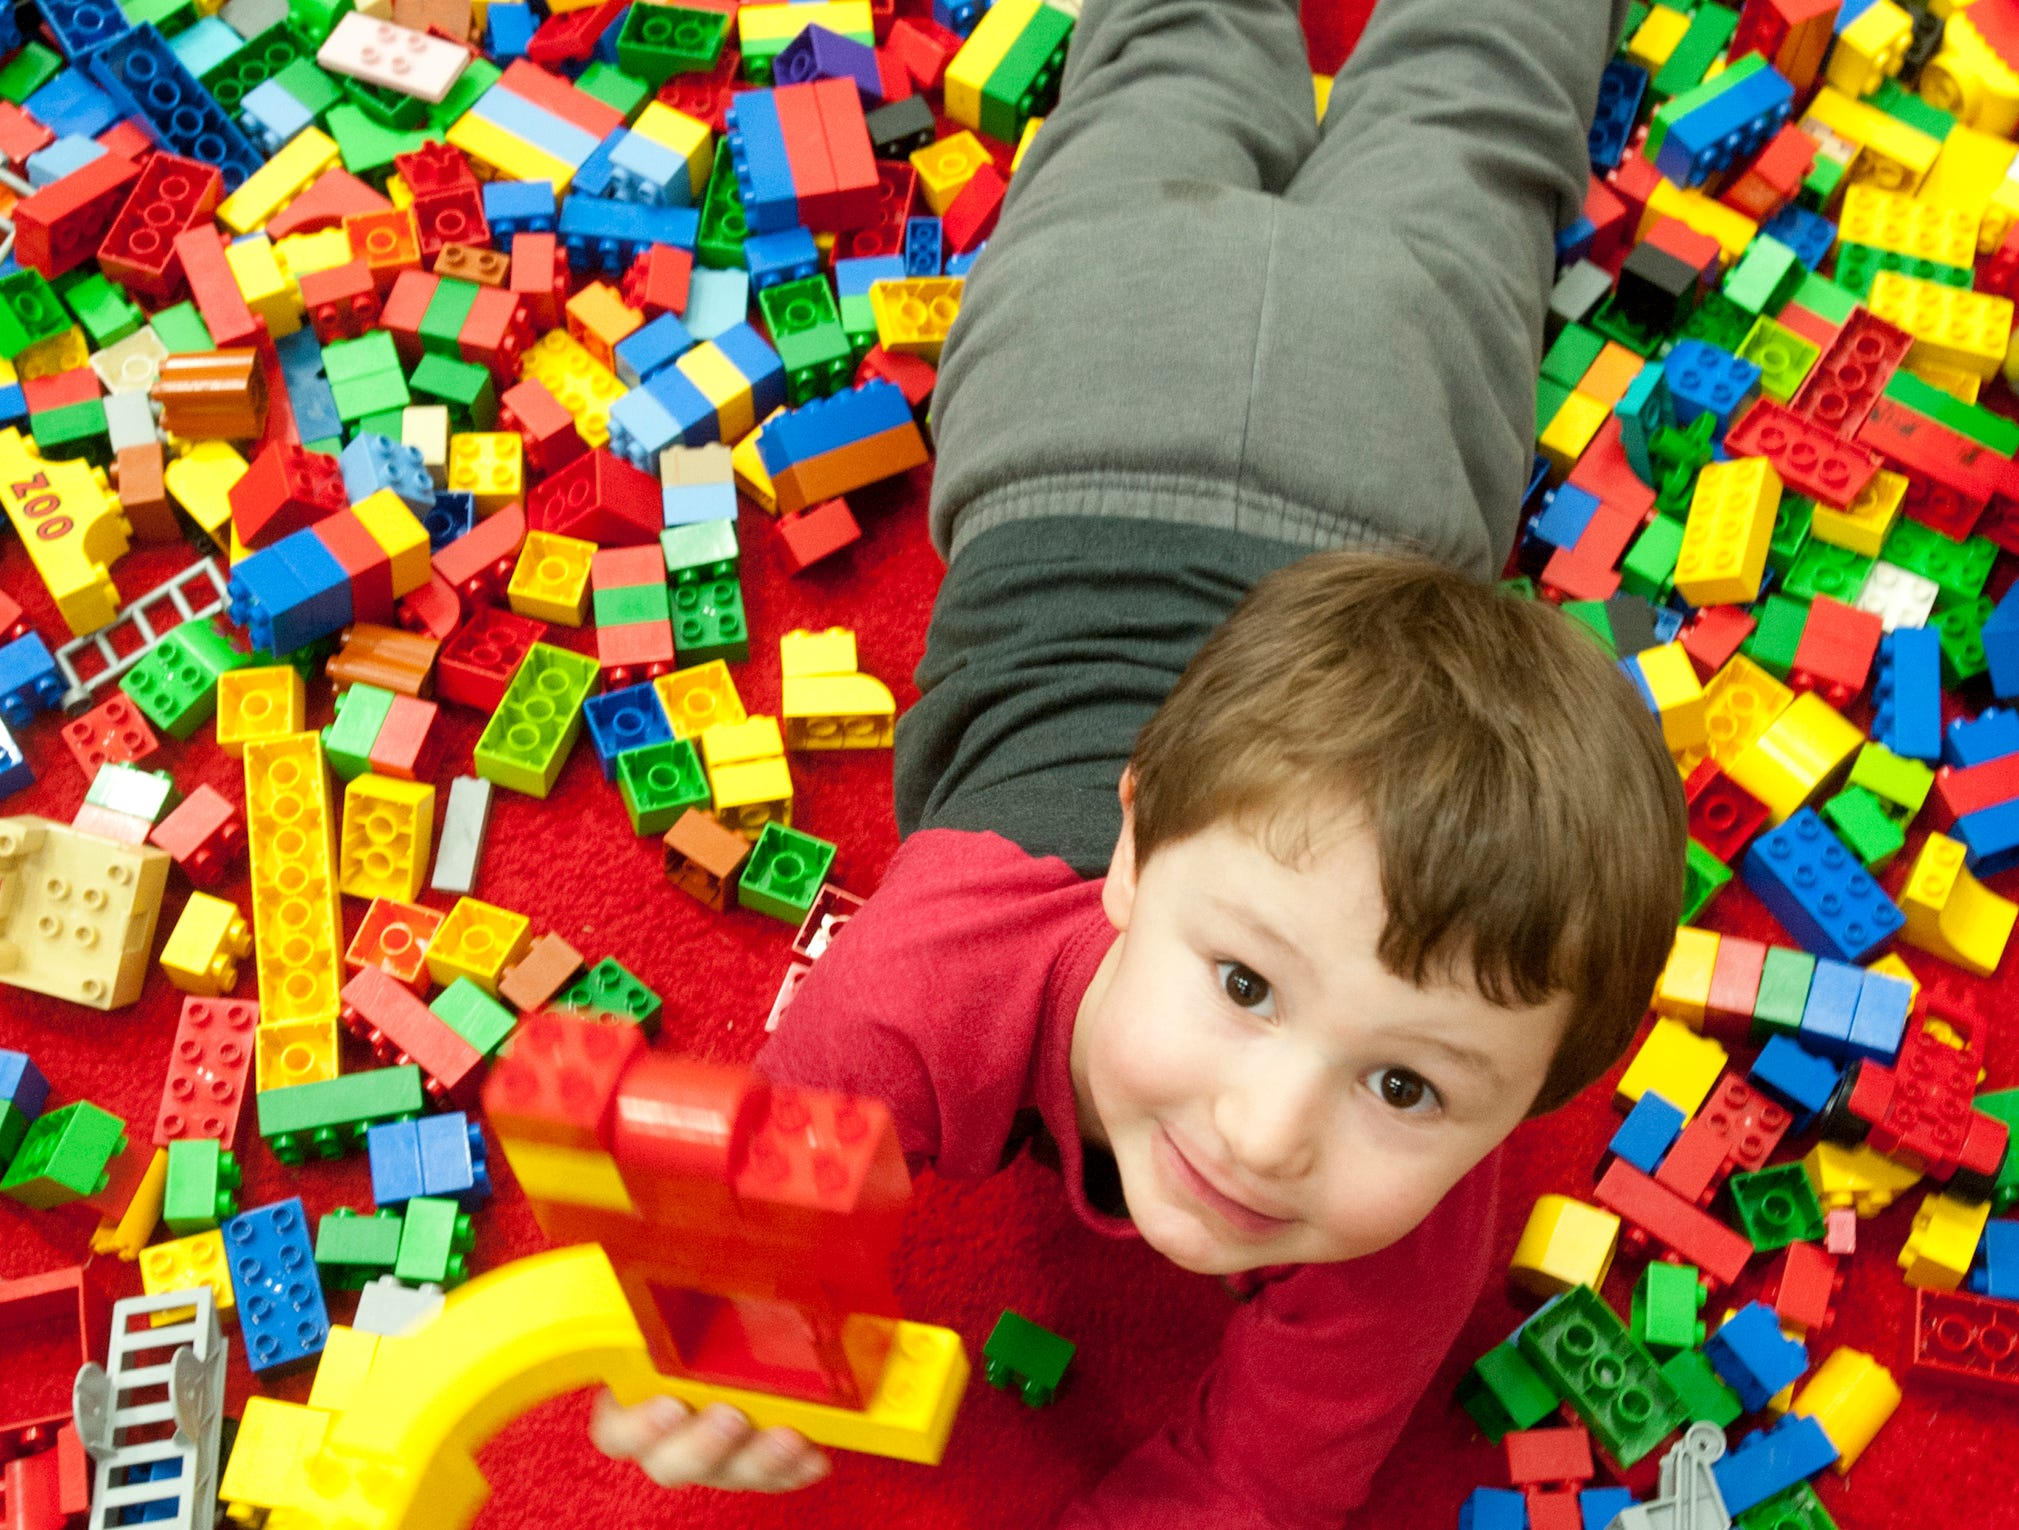 Levi Cook, age 4, of Mt. Washington, shows off his large Legos creation as he lays amid the pieces at the BrickUniverse Lego Fan Convention at the Kentucky International Convention Center in downtown Louisville.19 January 2019